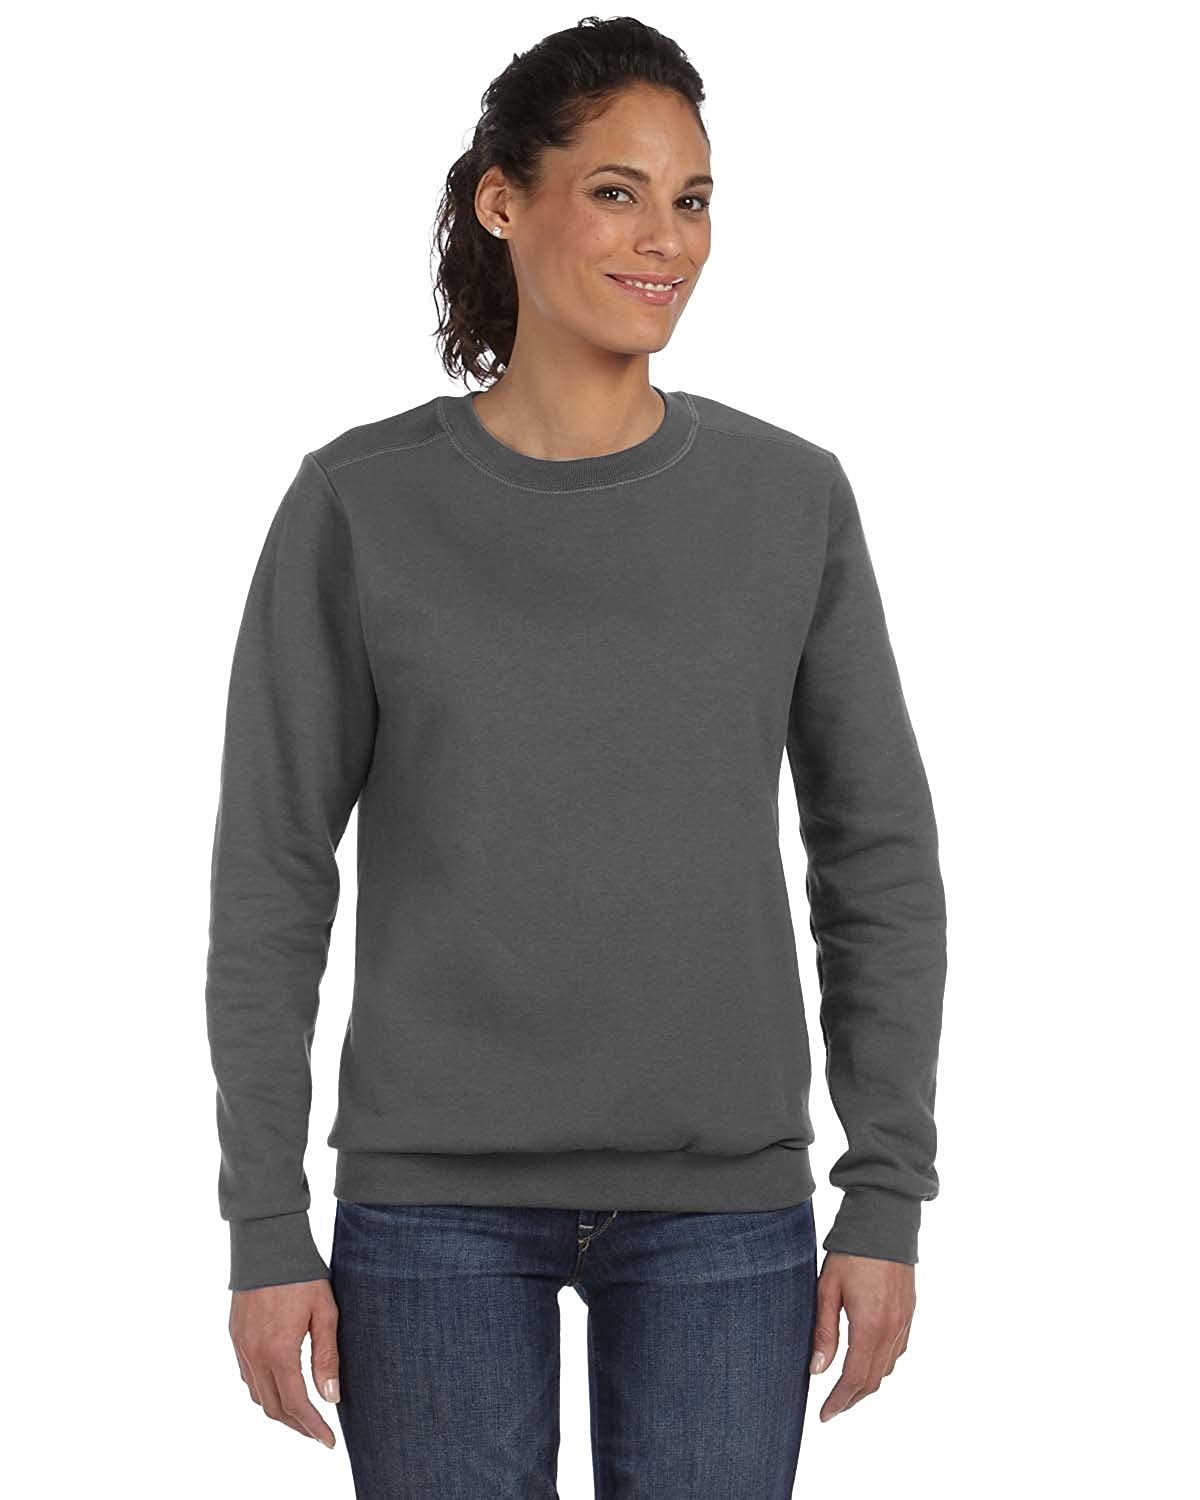 Anvil Damen Sweatshirt/71000FL